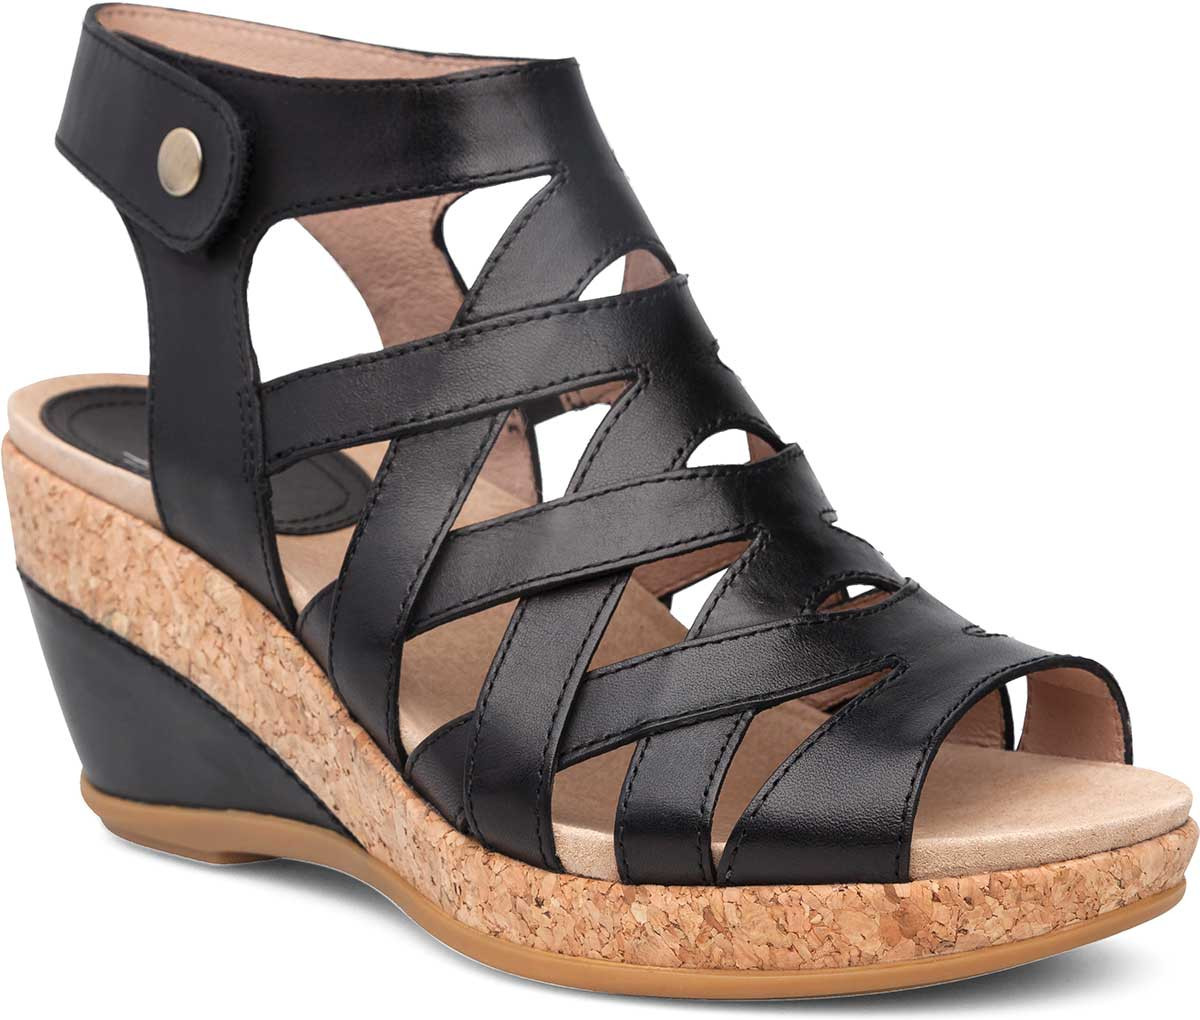 8d205af1a02 Home · Women s · Shop By Style · Sandals  Dansko Cecily. Black Full Grain  Leather